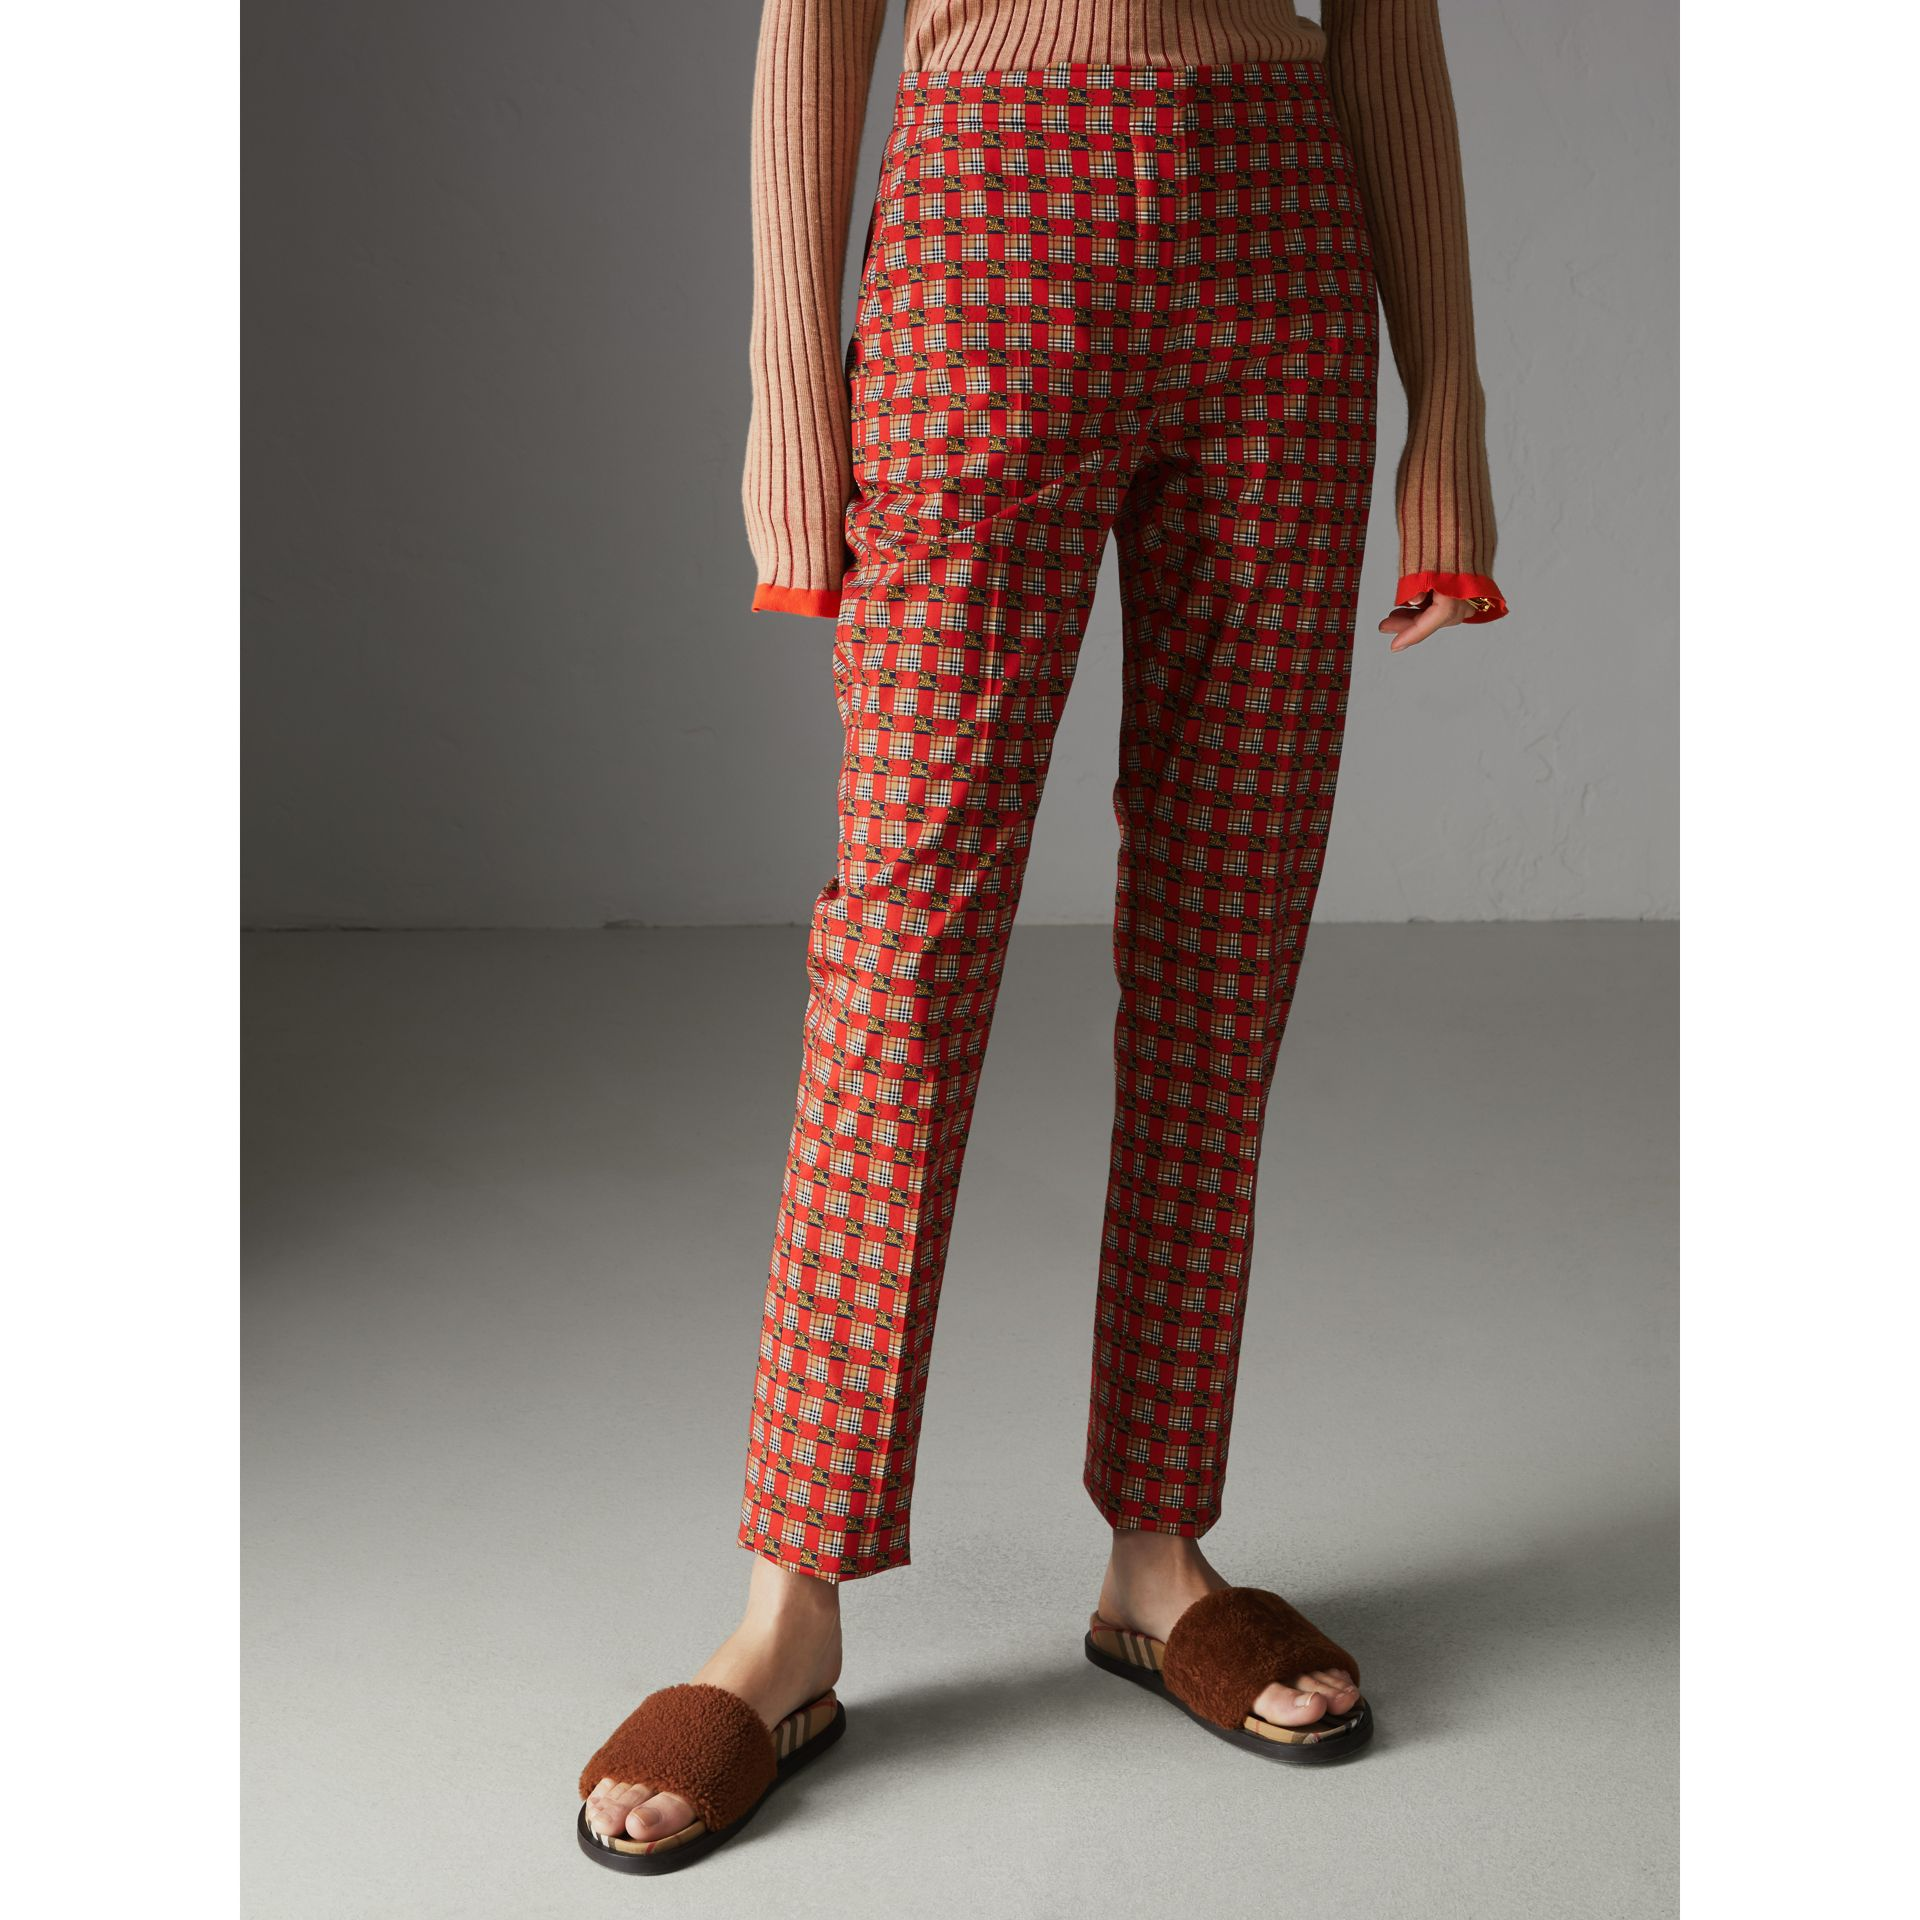 Tiled Archive Print Stretch Cotton Cigarette Trousers in Orange Red - Women | Burberry - gallery image 4